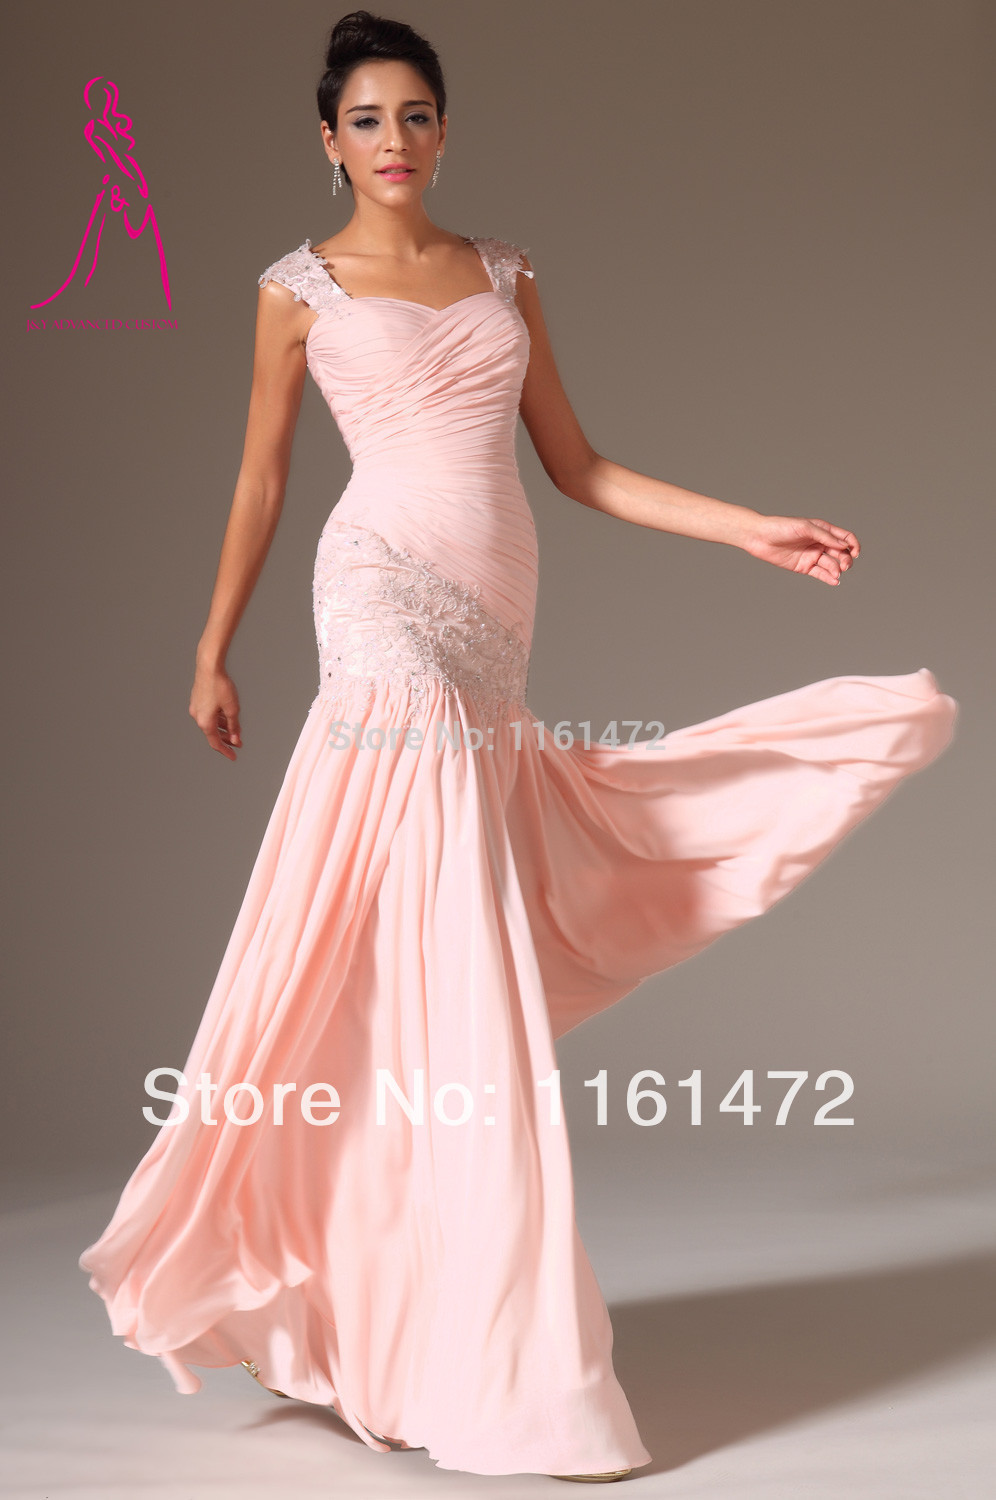 Prom dresses san diego cheap - Dressed for less